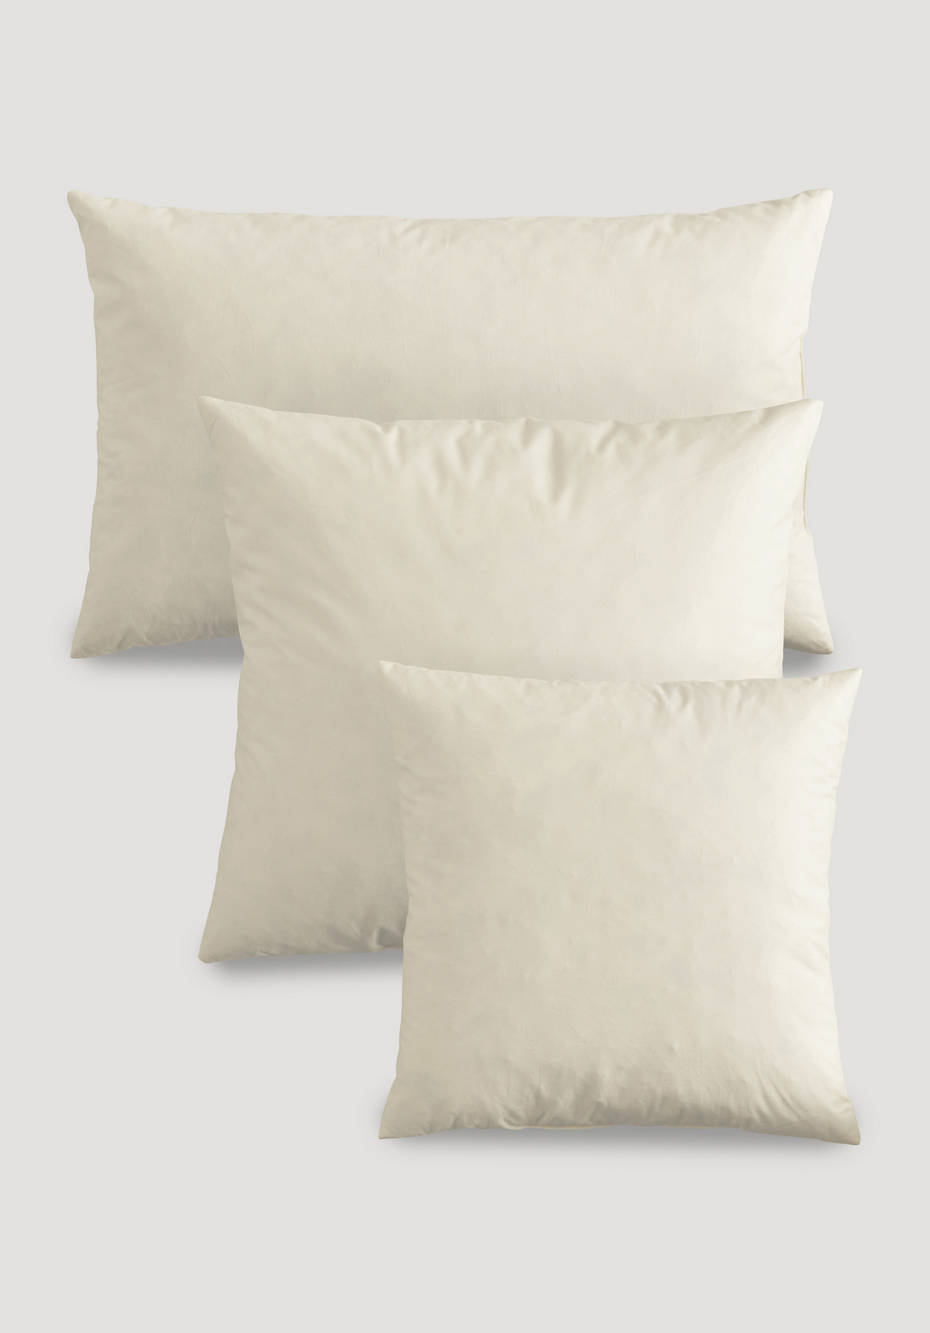 Decorative pillows with fair feathers